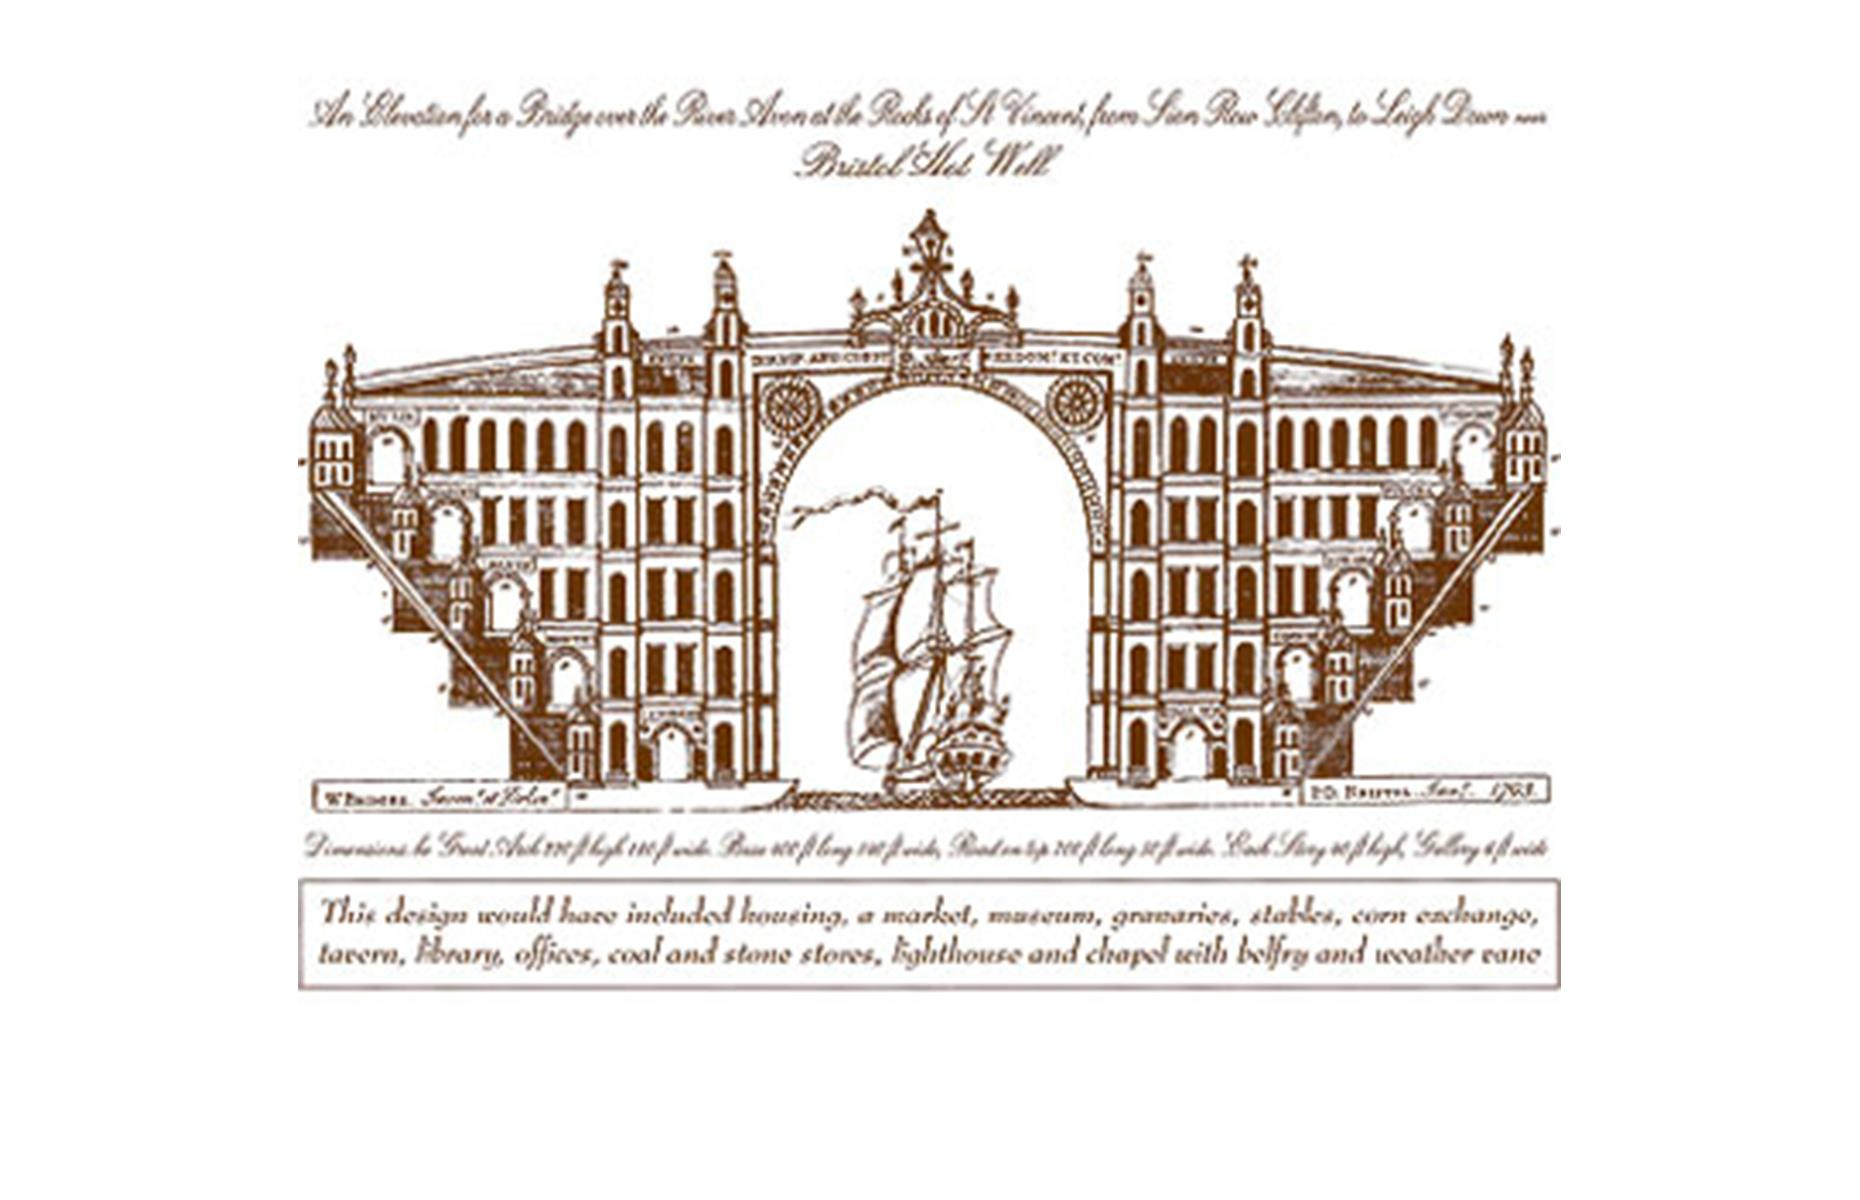 Slide 17 of 28: The idea for a bridge here first arose in the 1750s, when merchant William Vick left money towards the structure in his will. Architect William Bridges put forward a design (pictured) made up of a mighty stone arch, supported each side by towers of homes and factories. However, when the French Revolution kicked off, Bridges' plans were put on hold and eventually abandoned due to their steep costs. A competition was held to determine the final look of the bridge and Brunel's more pared-back design won.